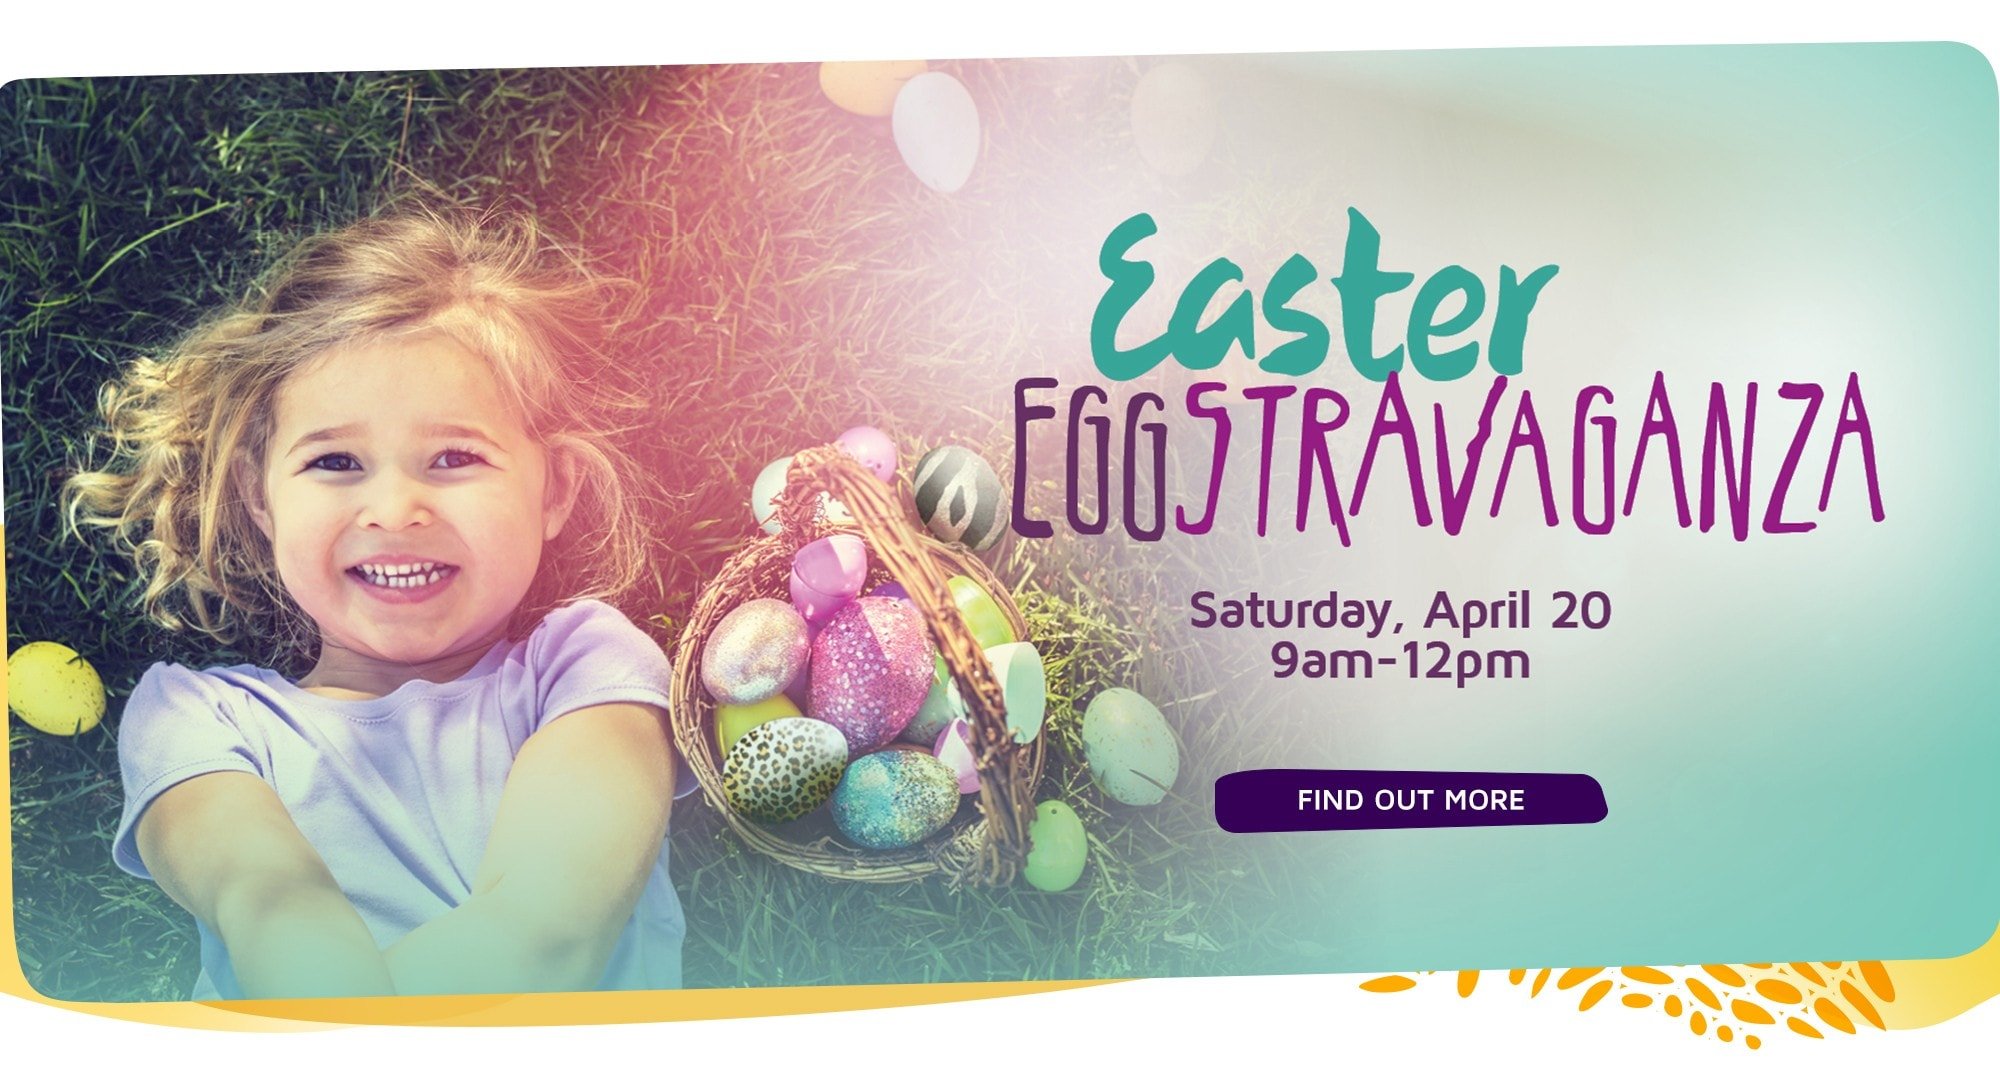 Easter Eggstravaganza at The Living Desert | Saturday, April 20